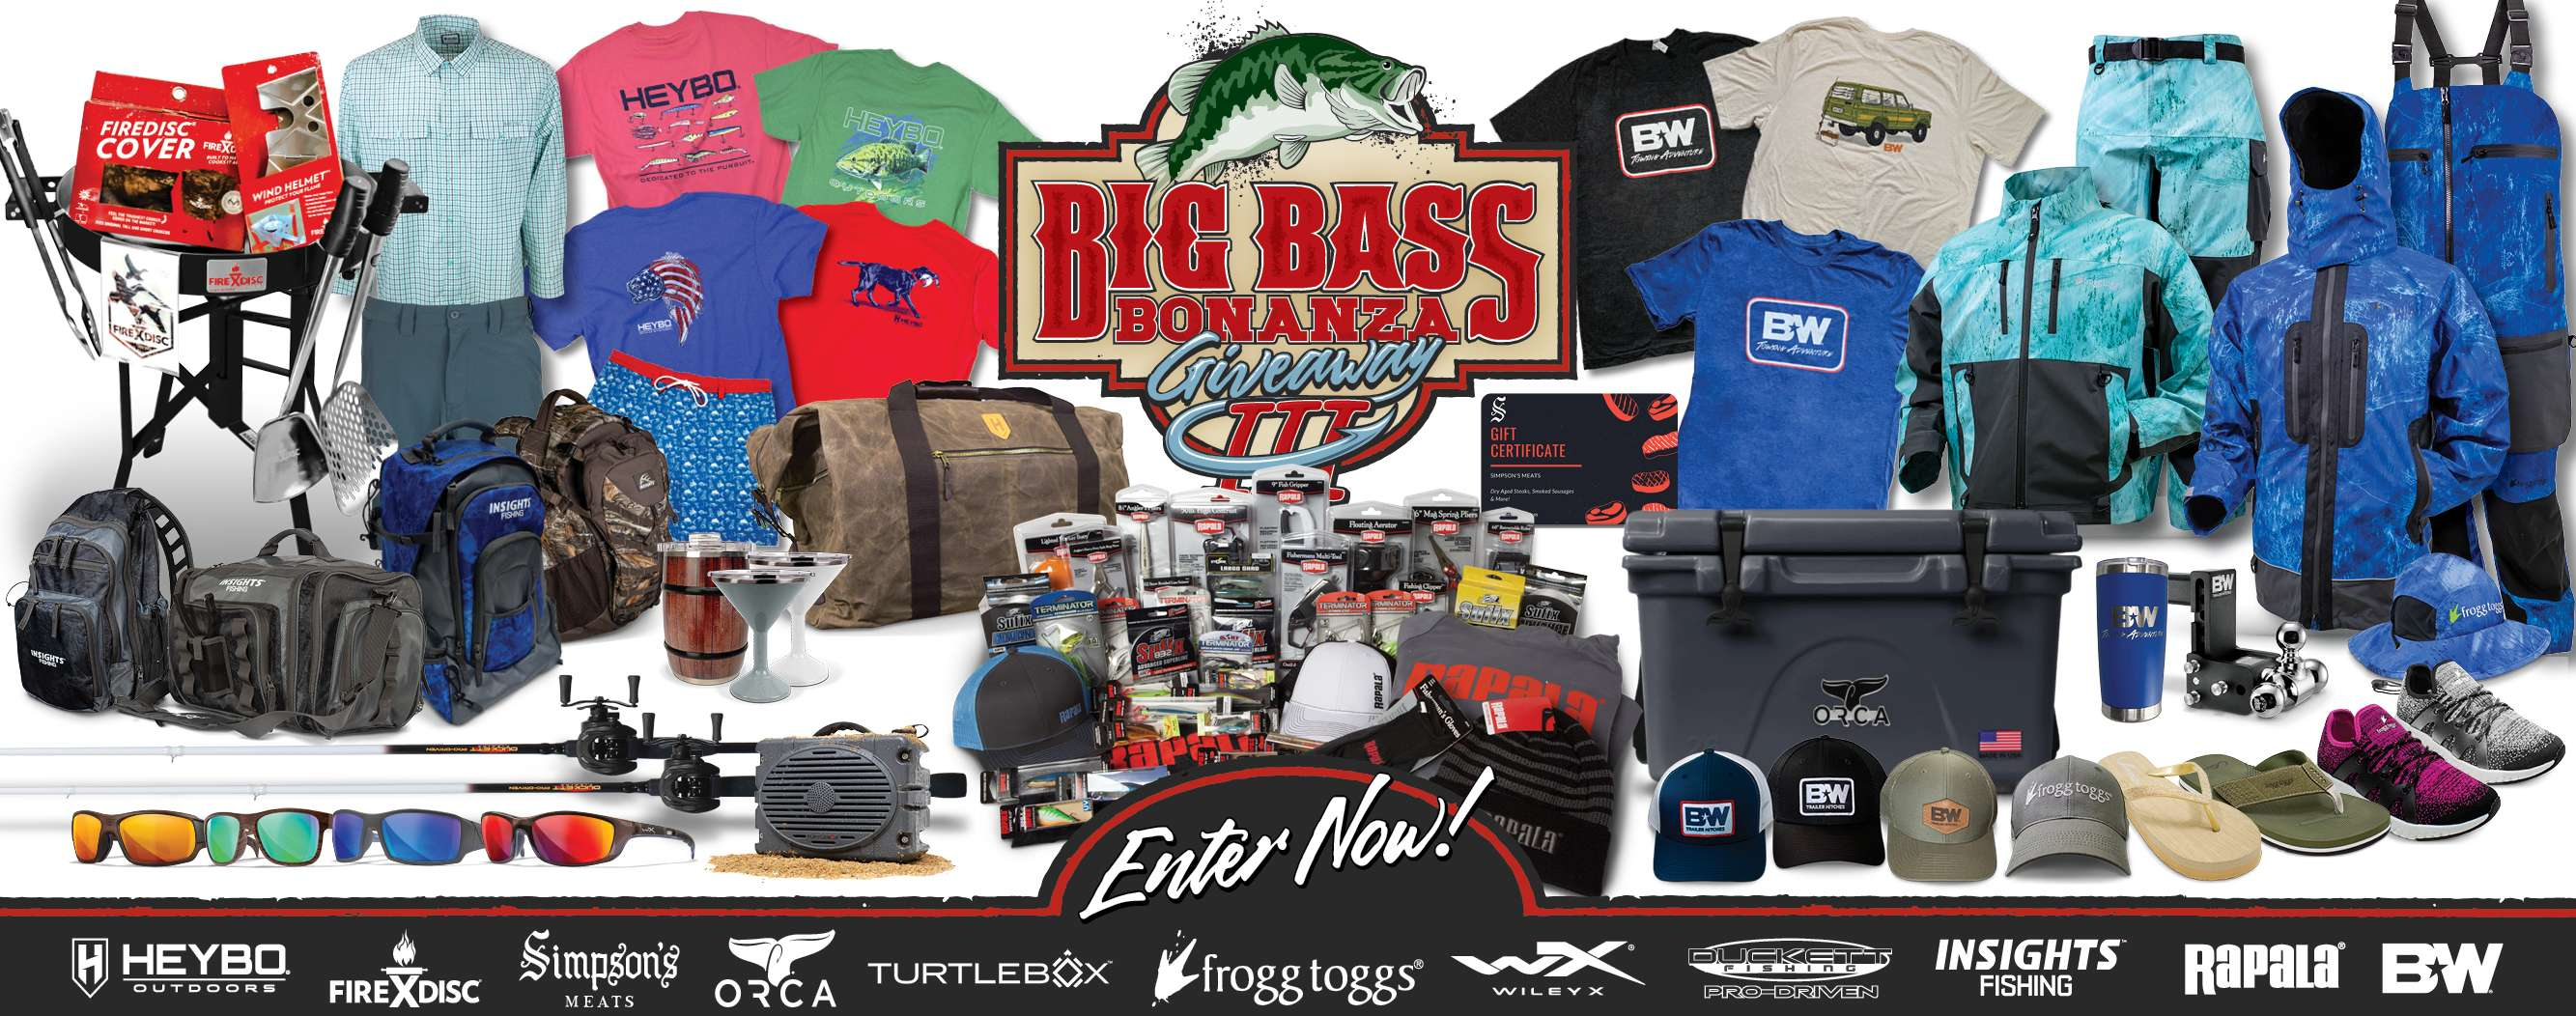 Extreme Bass Giveaway